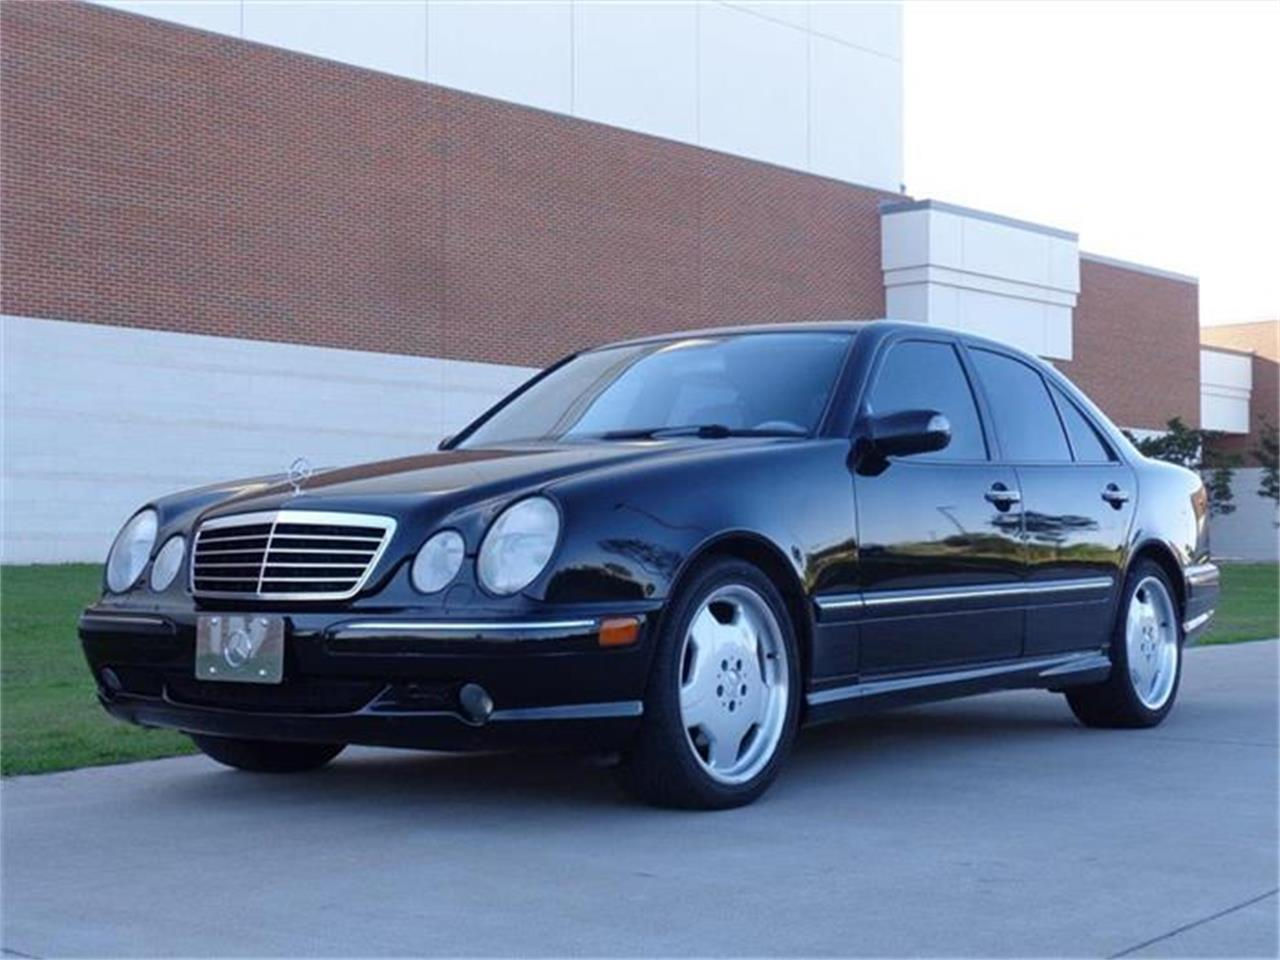 Large Picture of 2001 Mercedes-Benz E55 located in Texas Offered by Enthusiast Motor Cars of Texas - HUJ9